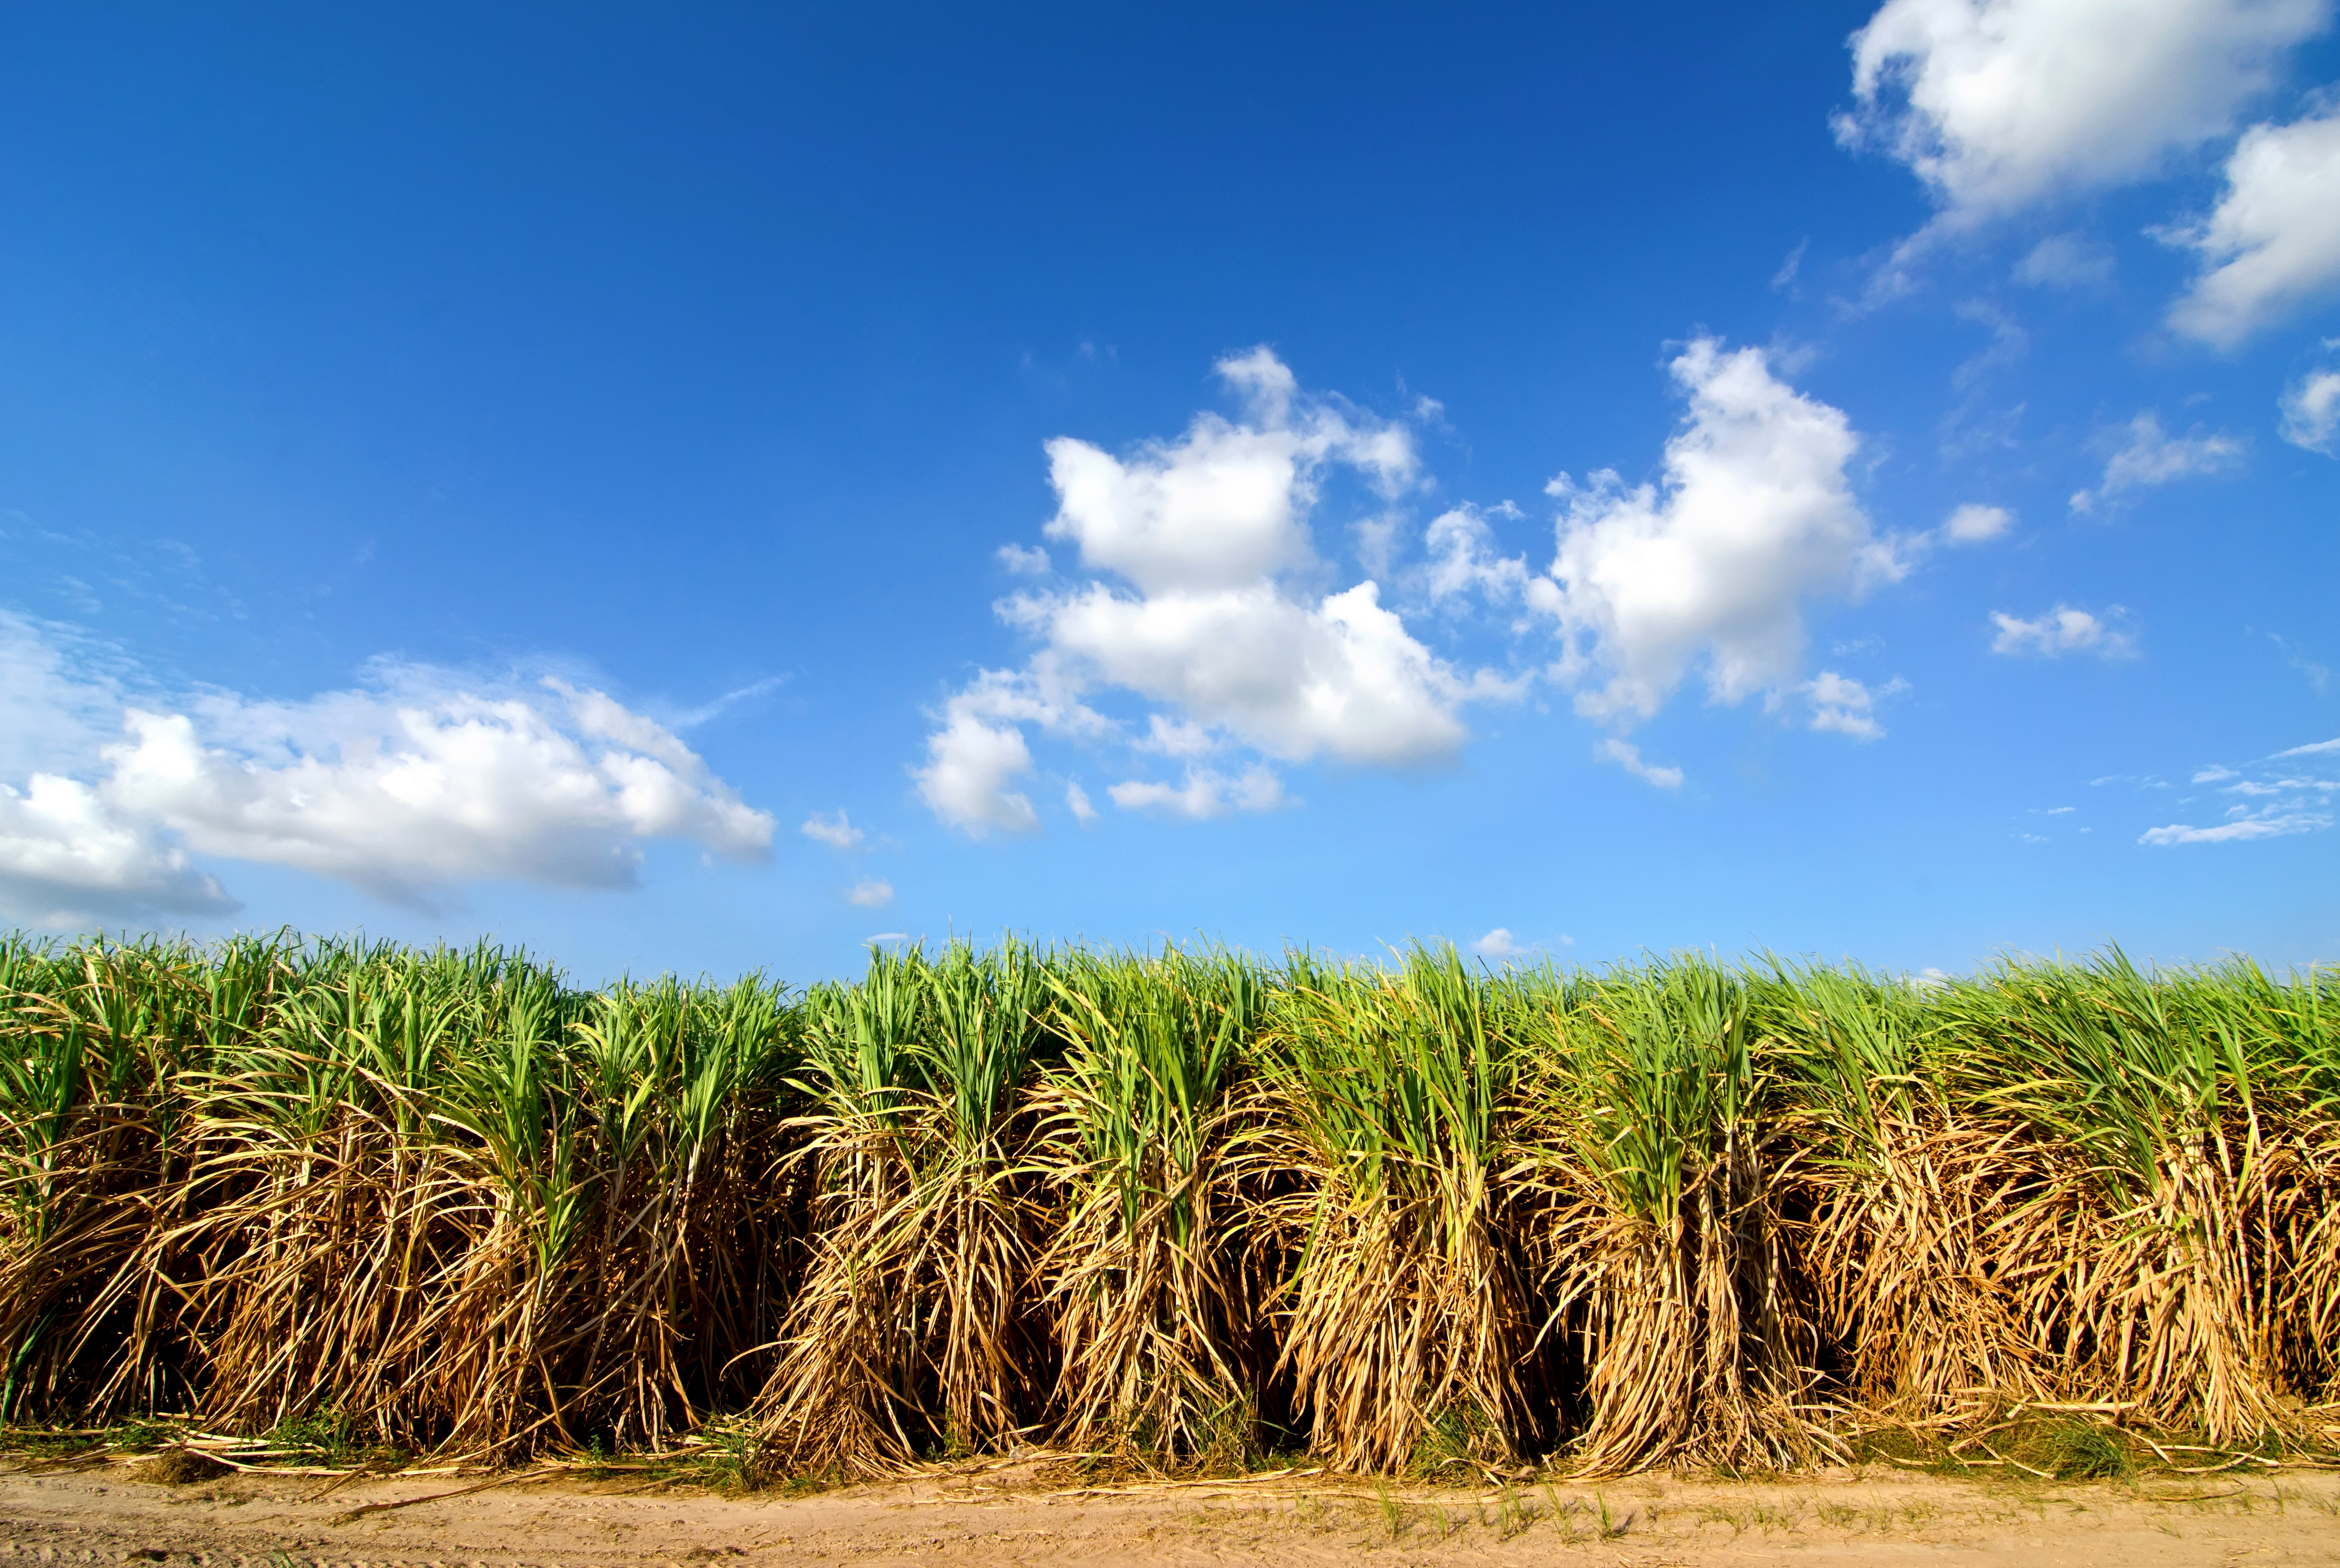 Sugarcane with Traditional Row Spacing